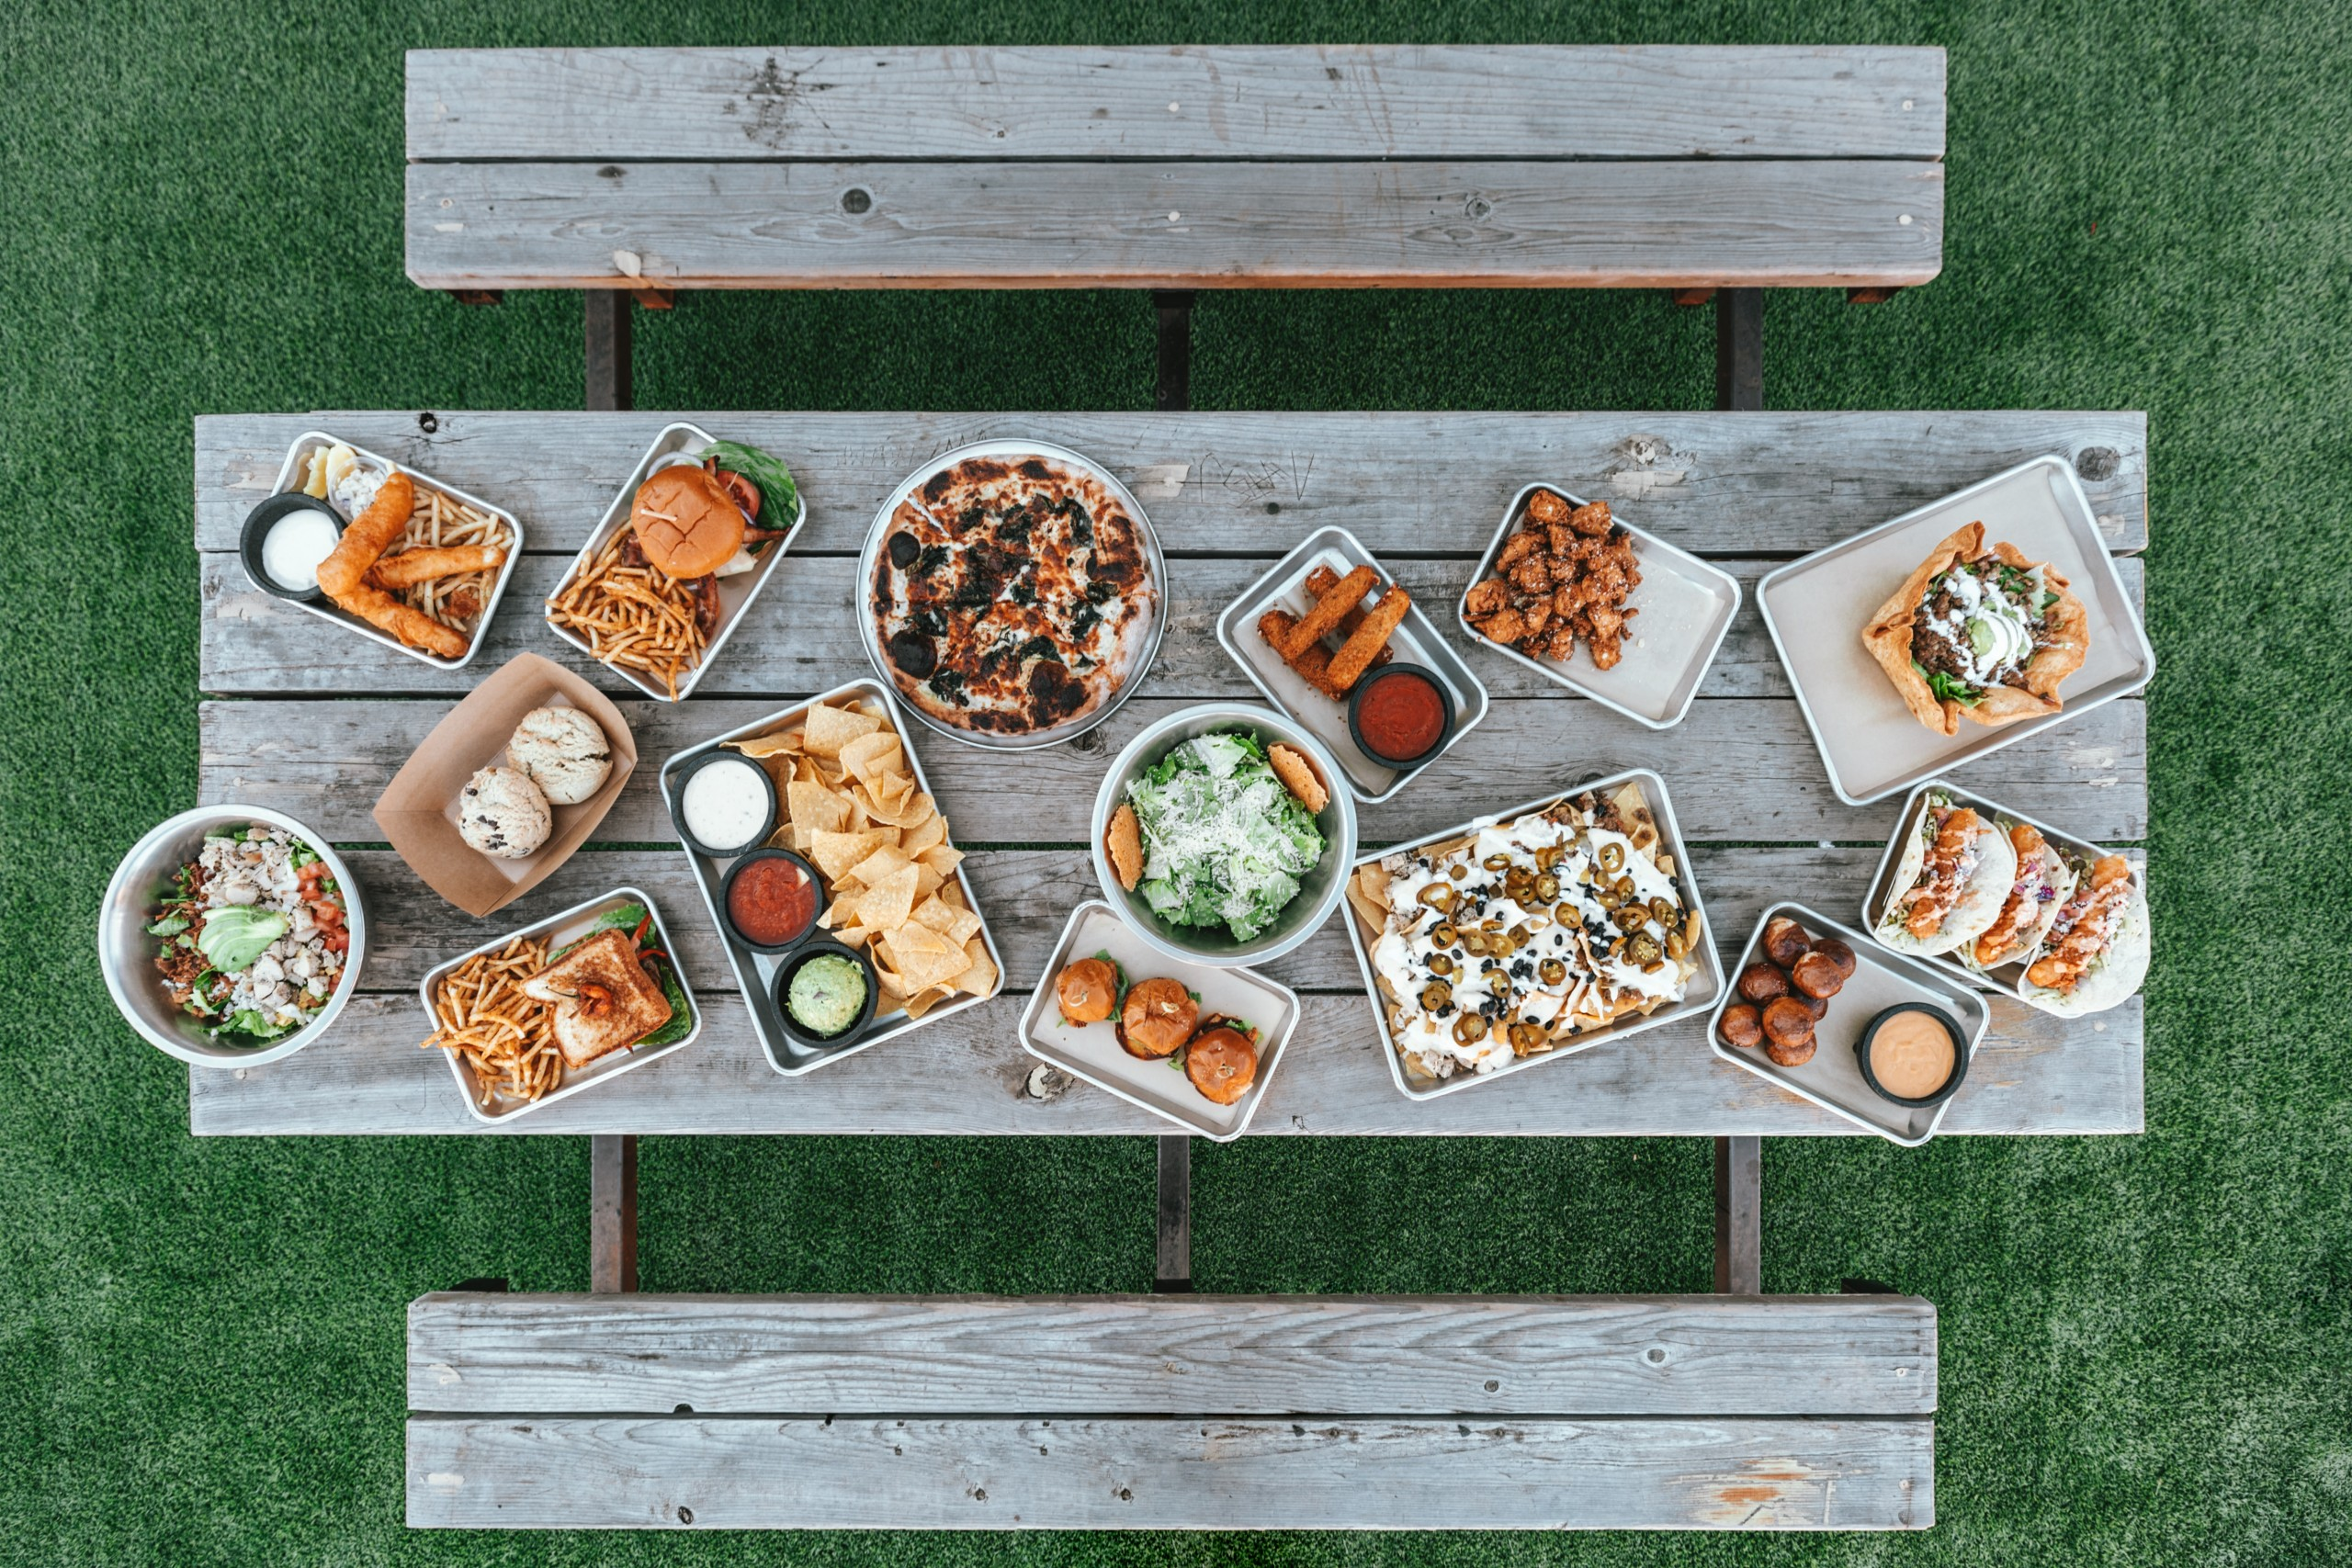 Picnic table outside filled with plates of food.